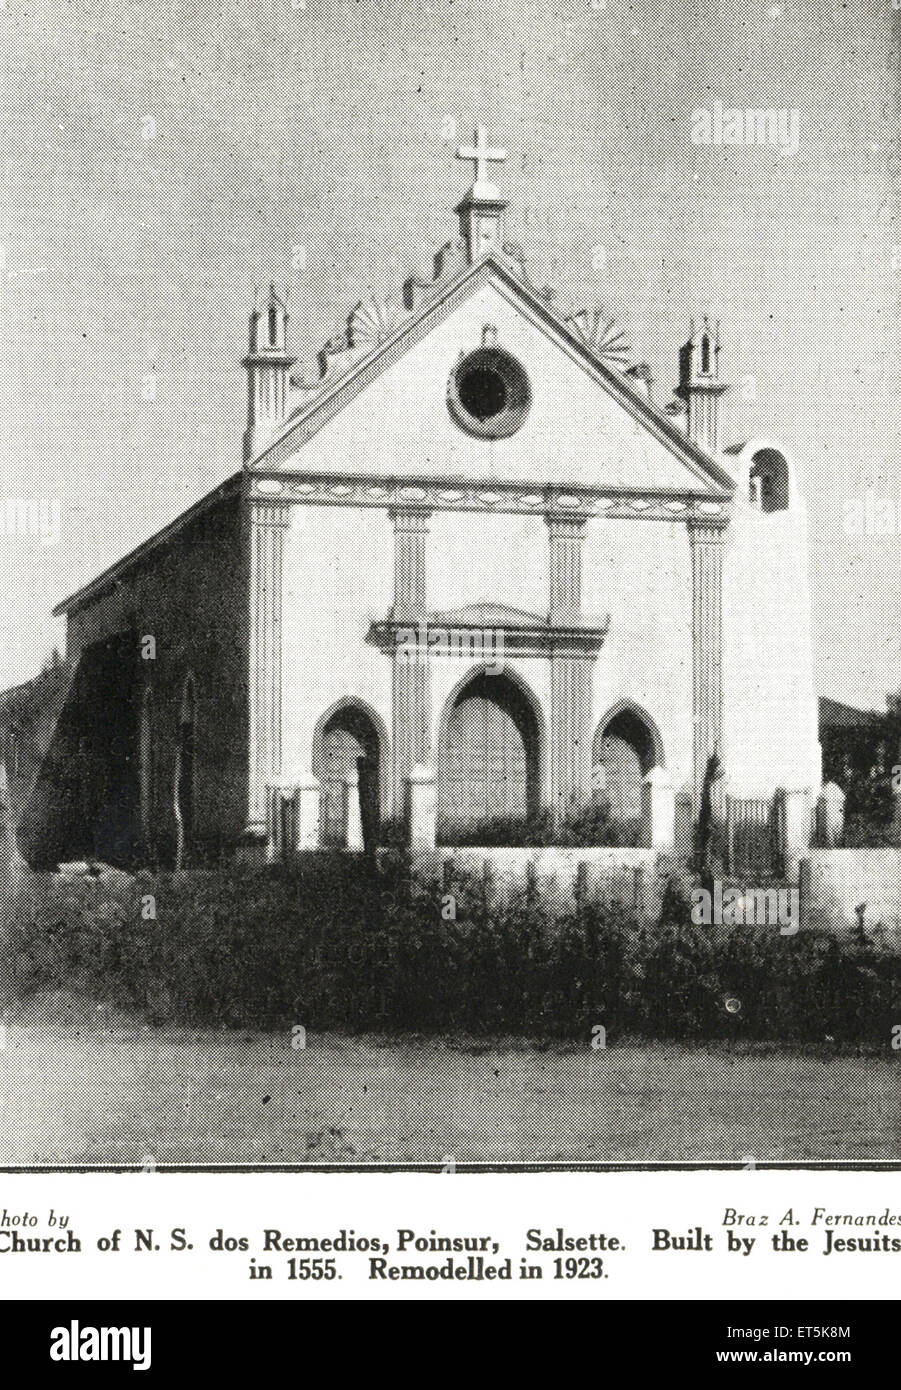 Church of N. S. Dos Remedios ; Poinsur ; Selsette built by Jesuits in 1555 remodelled in 1923 ; Brivali ; Mumbai - Stock Image